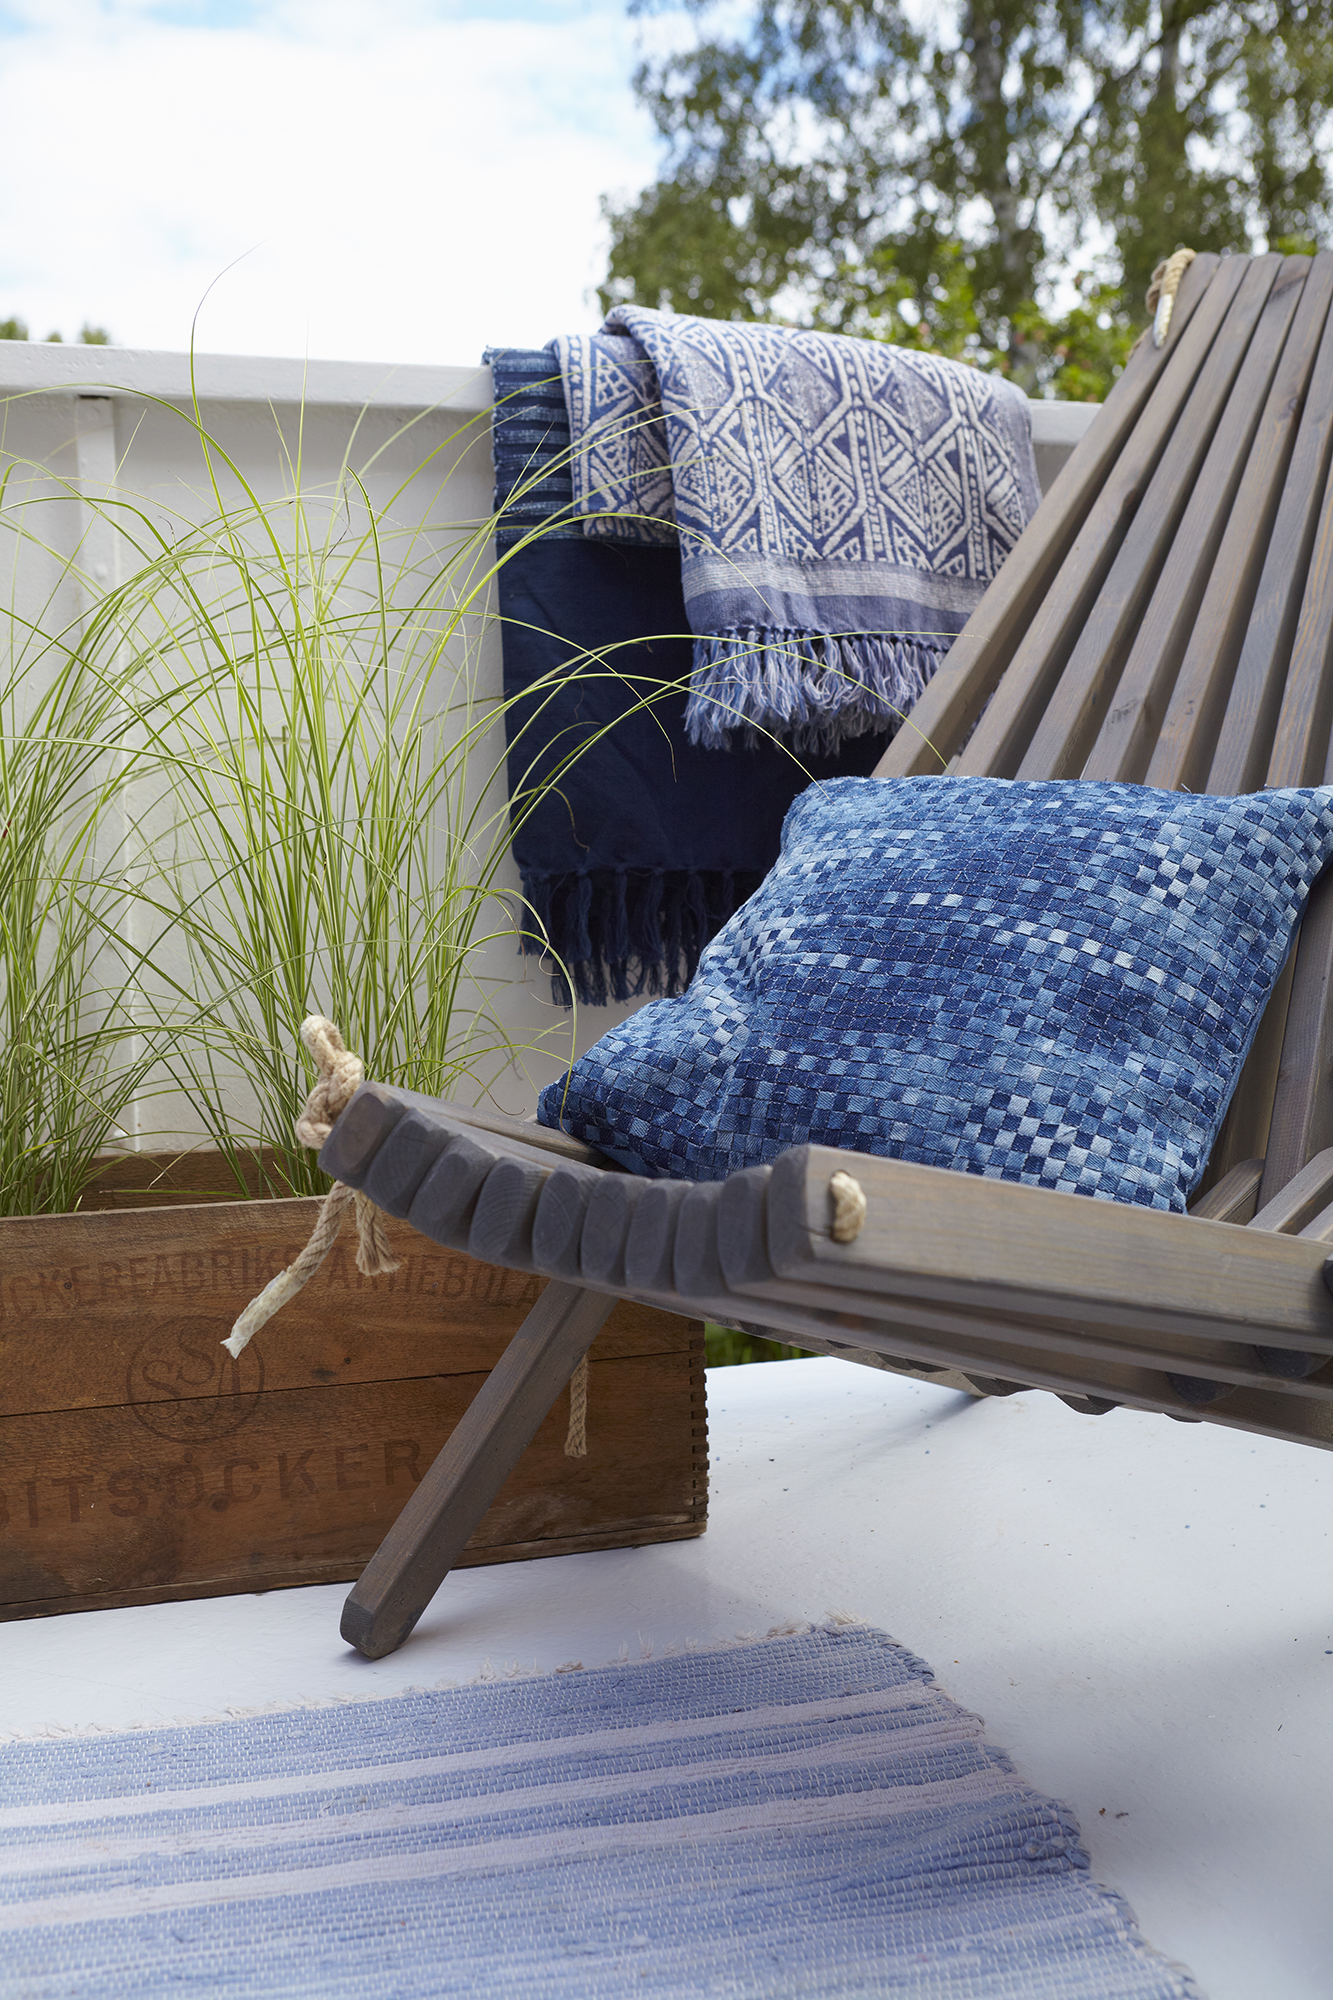 Sun chair on porch with blue pillow